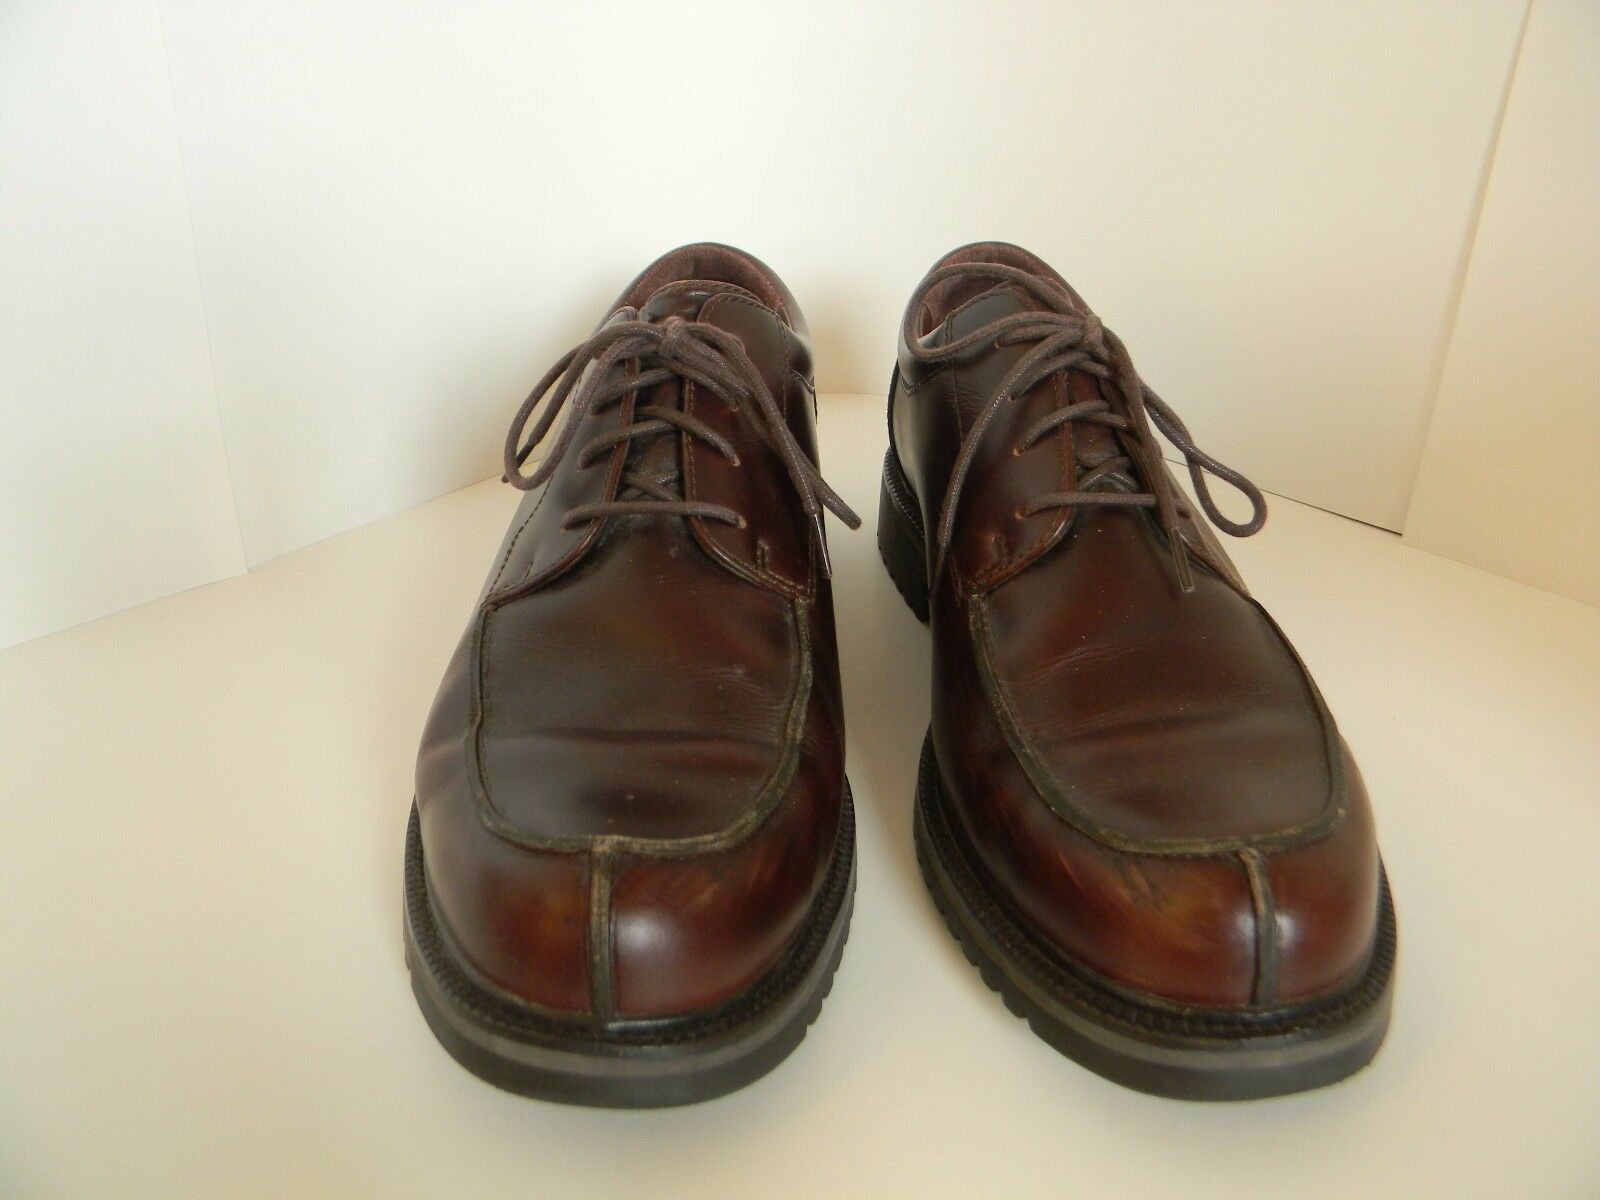 Mens Cole Oxford Haan Burgandy Country Waterproof Oxford Cole Shoes Size 11M 9bde4c